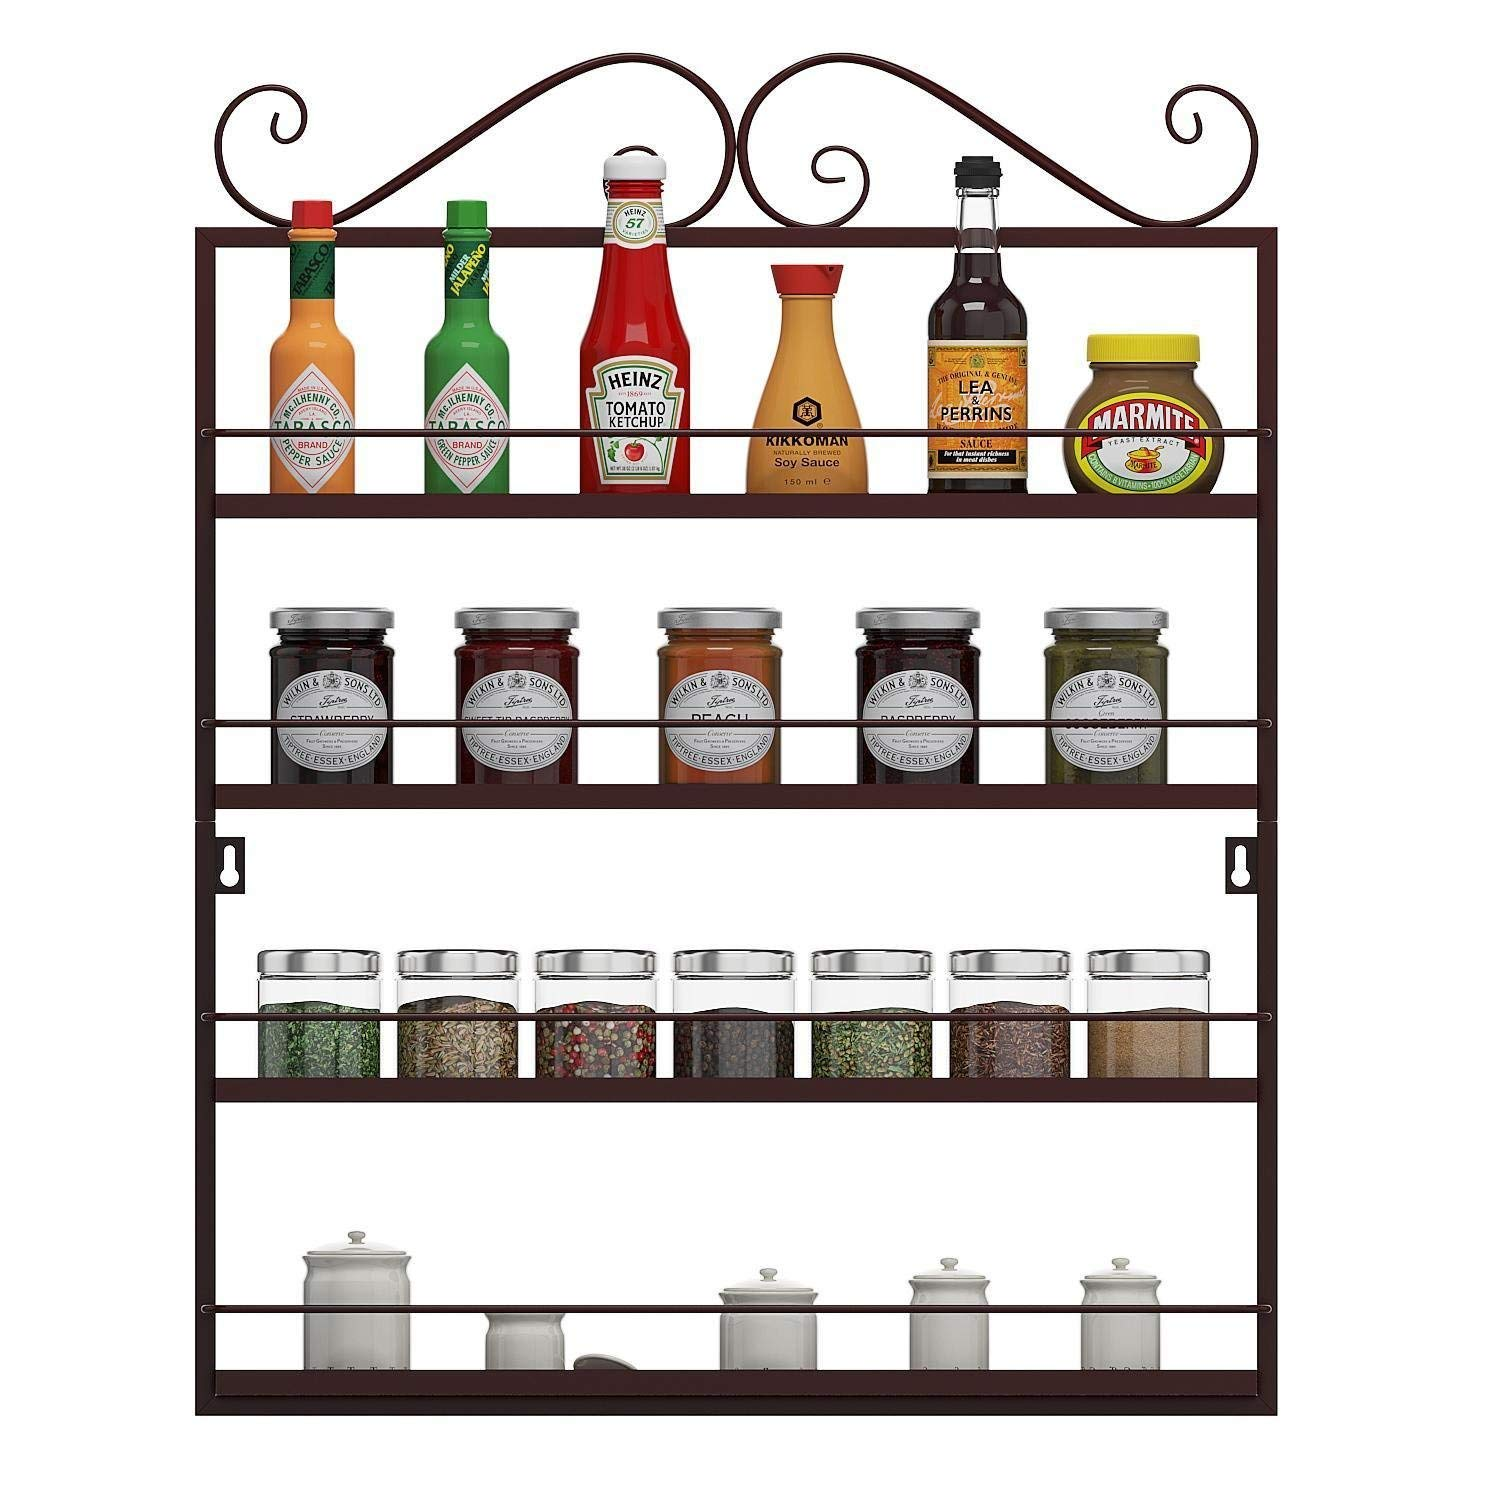 Utheing Durable Multifunctional Metal Kitchen Condiments Storage Shelves, Wall Mounted Storage Rack, Great for Storing Spices, Household Items (bronze)